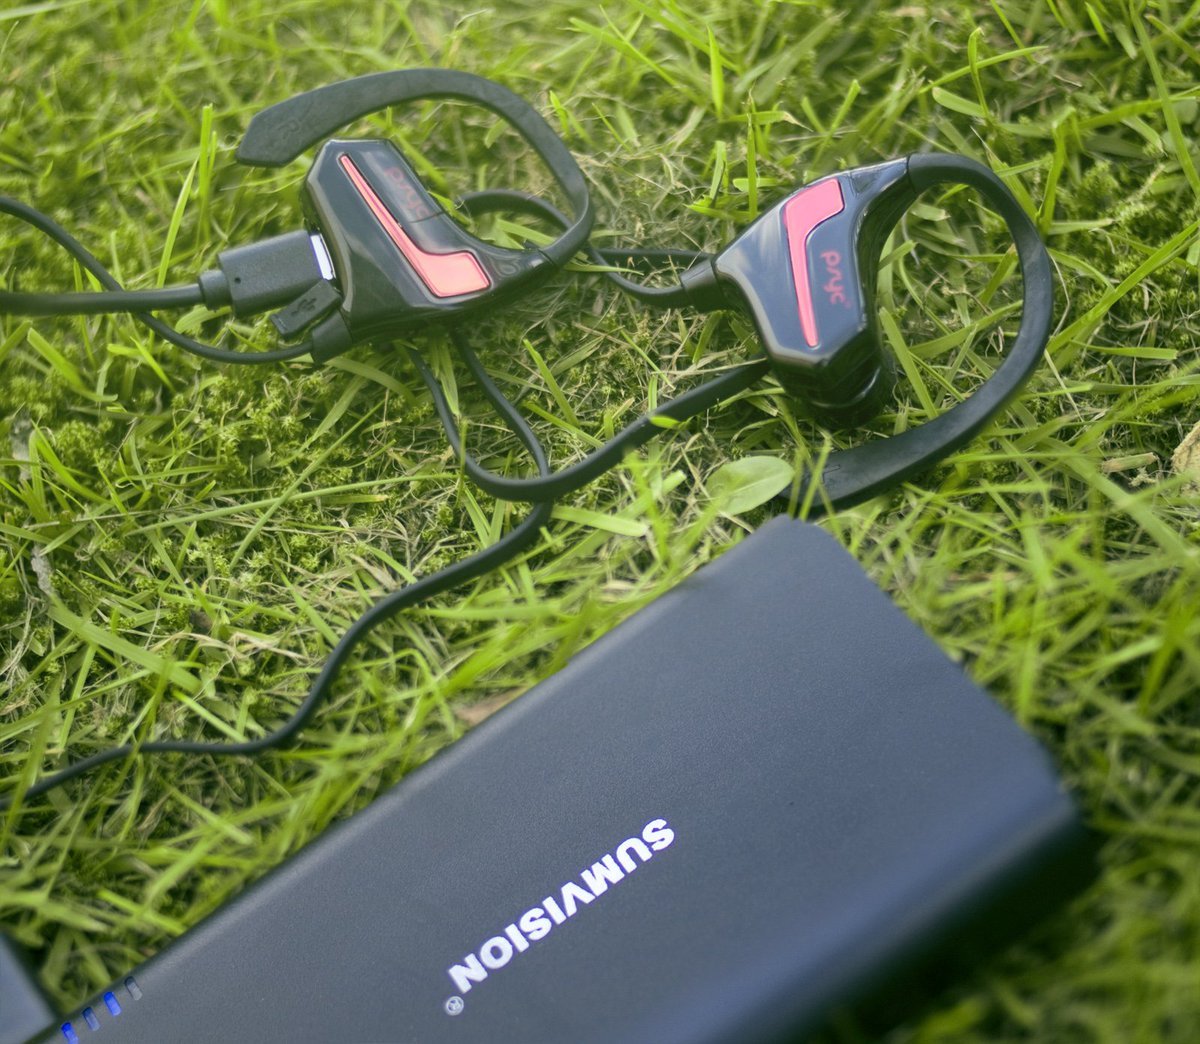 Need some tunes when you job? Go with our PSYC Esprit sports earphones and keep it on charge with our 10,000 mAh power bank! #continuouspower  #sumvision #esprit #psycsound #psyc #powerbank #music #audio<br>http://pic.twitter.com/QoA7gmFC7q